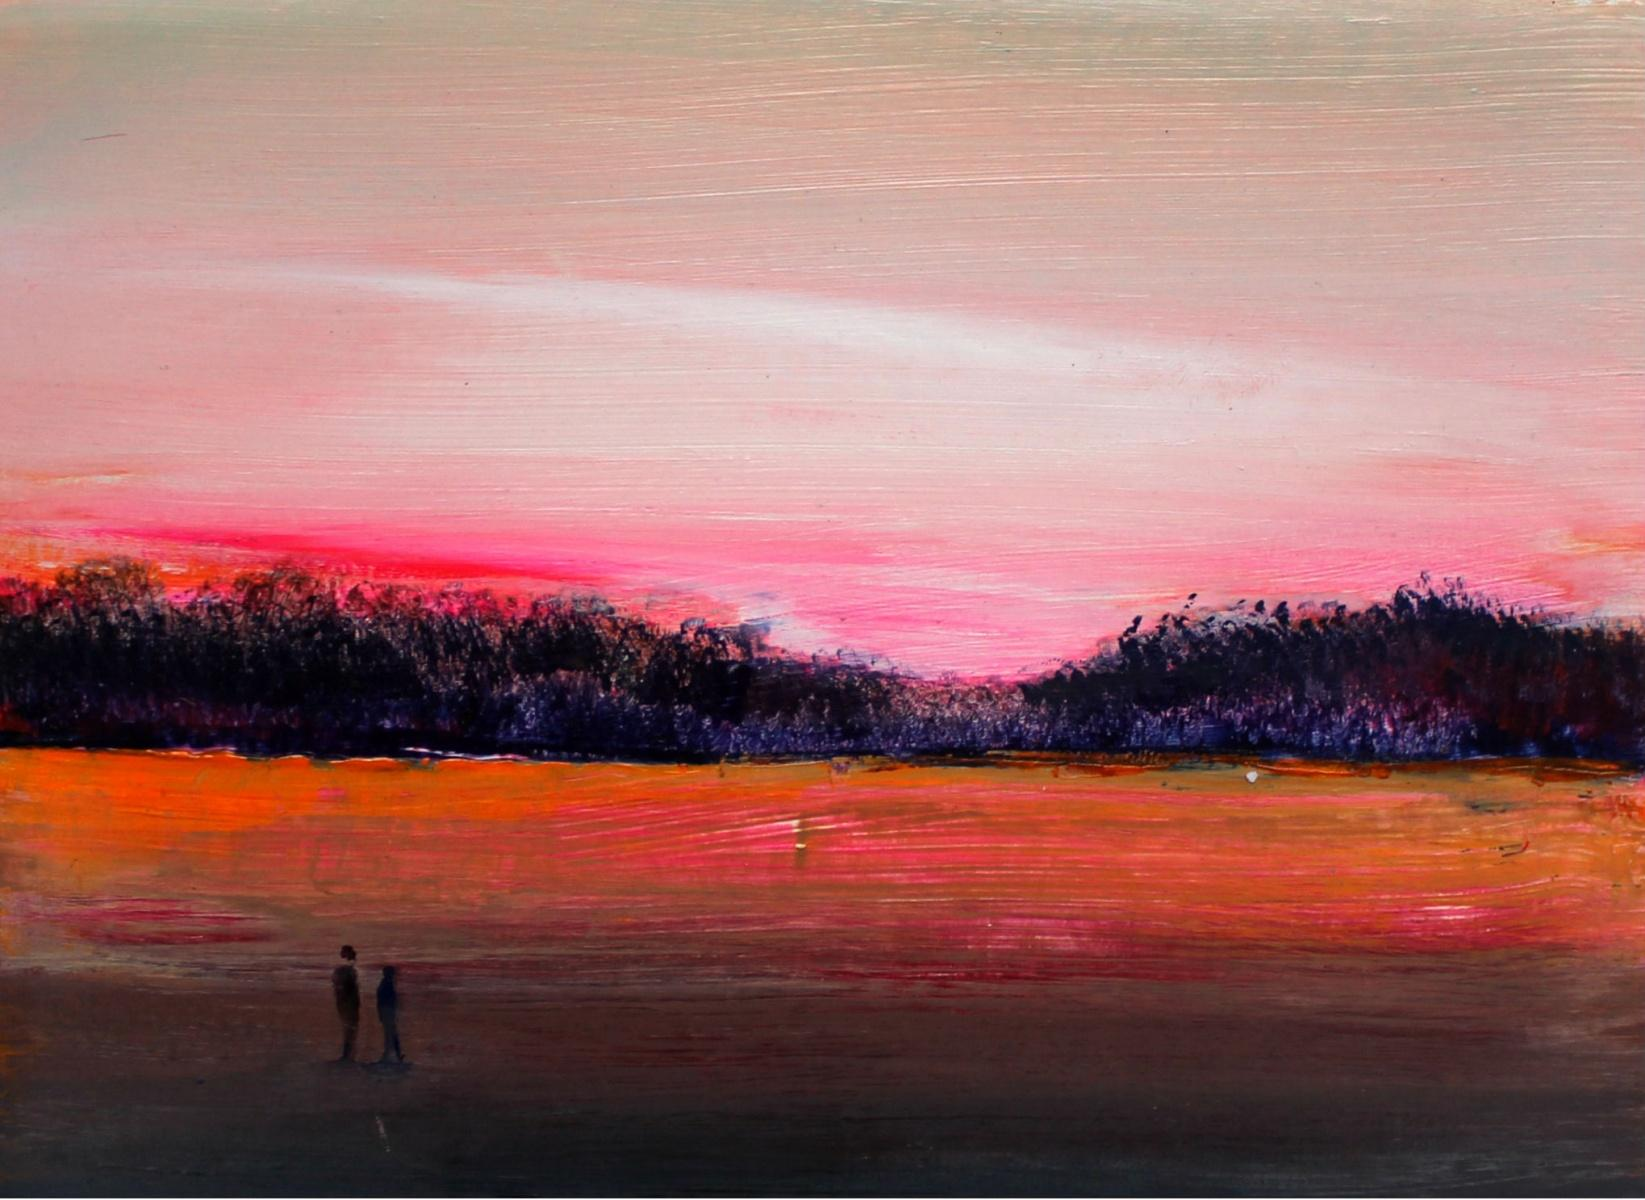 Landscape III - Acrylic Figurative Painting, Vibrant colors, Pink & orange